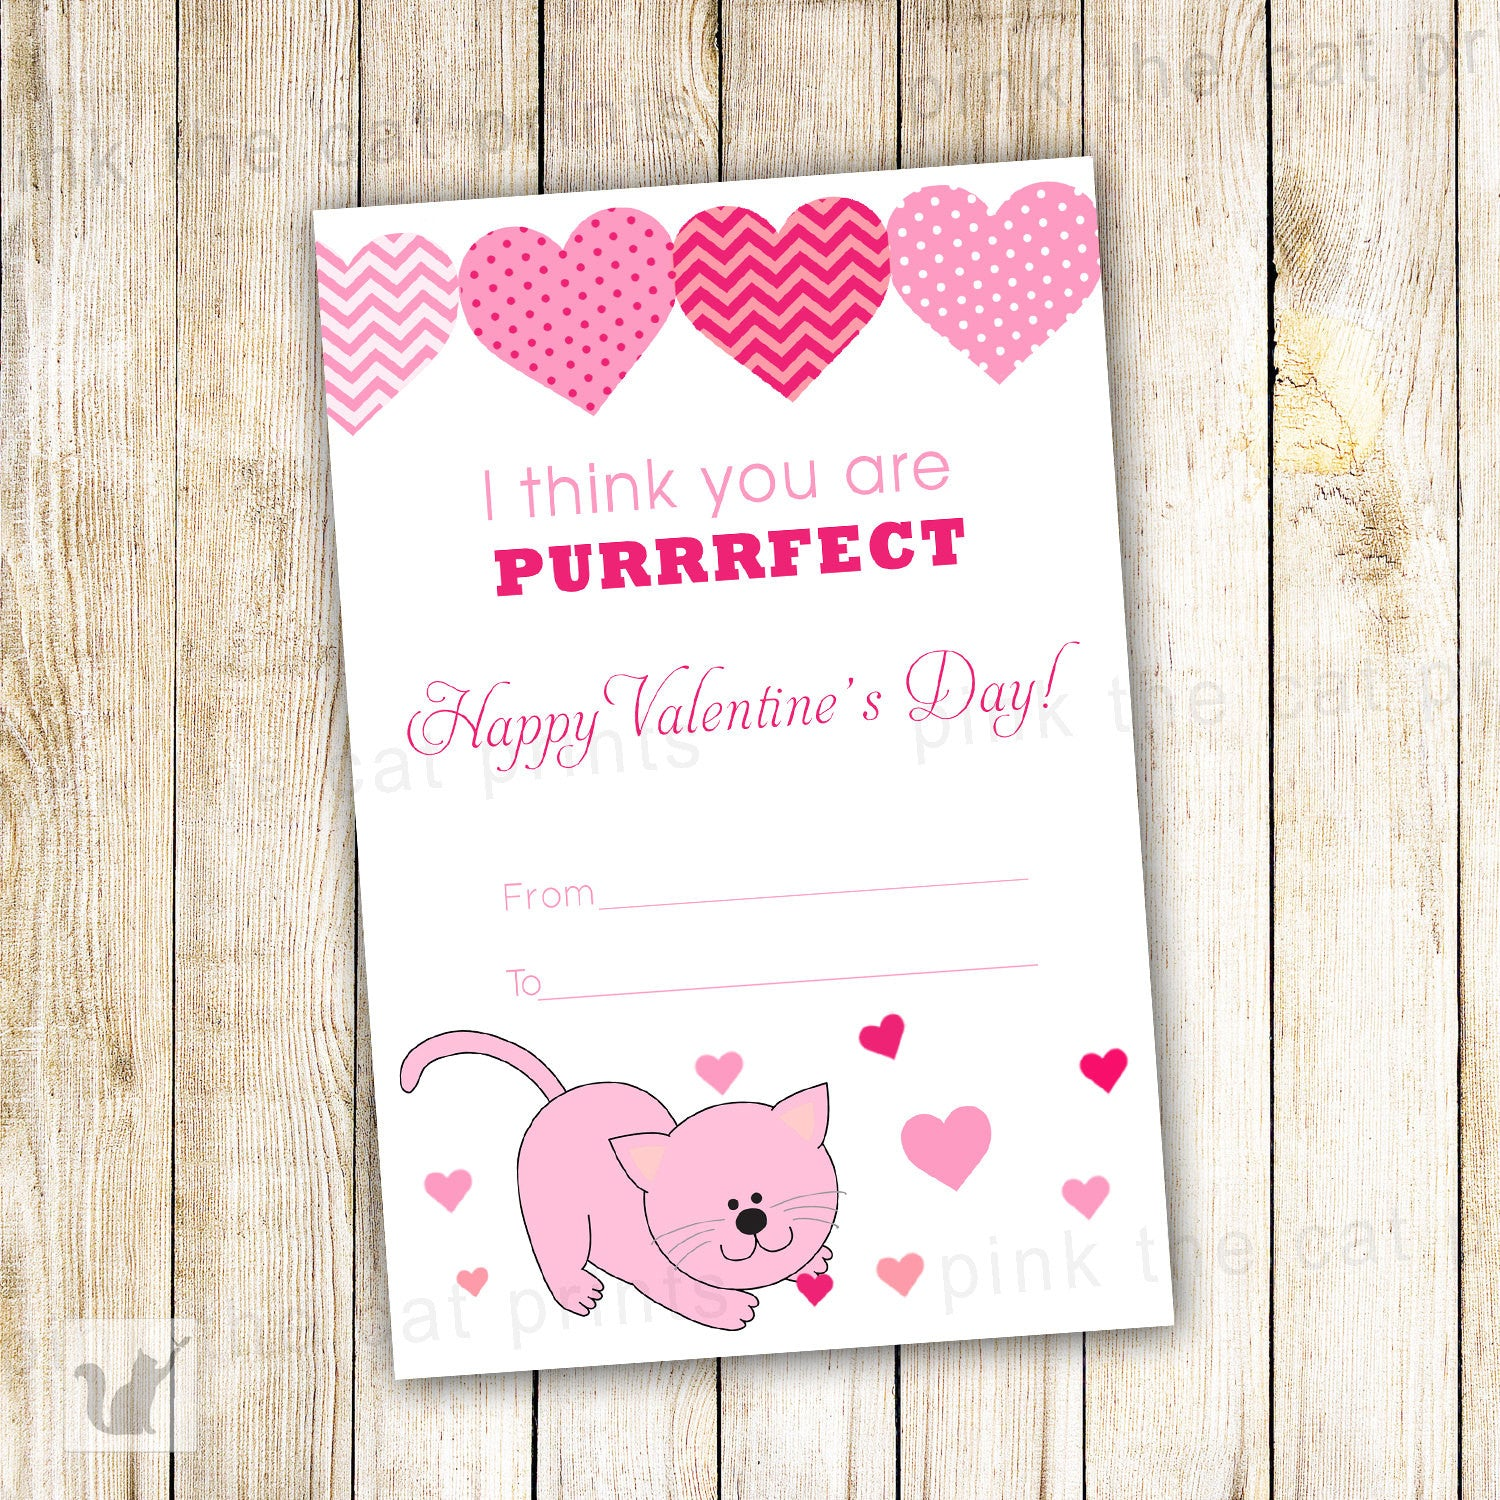 Kitten valentines greeting card you are purrfect cat printable kitten valentines greeting card you are purrfect cat printable file m4hsunfo